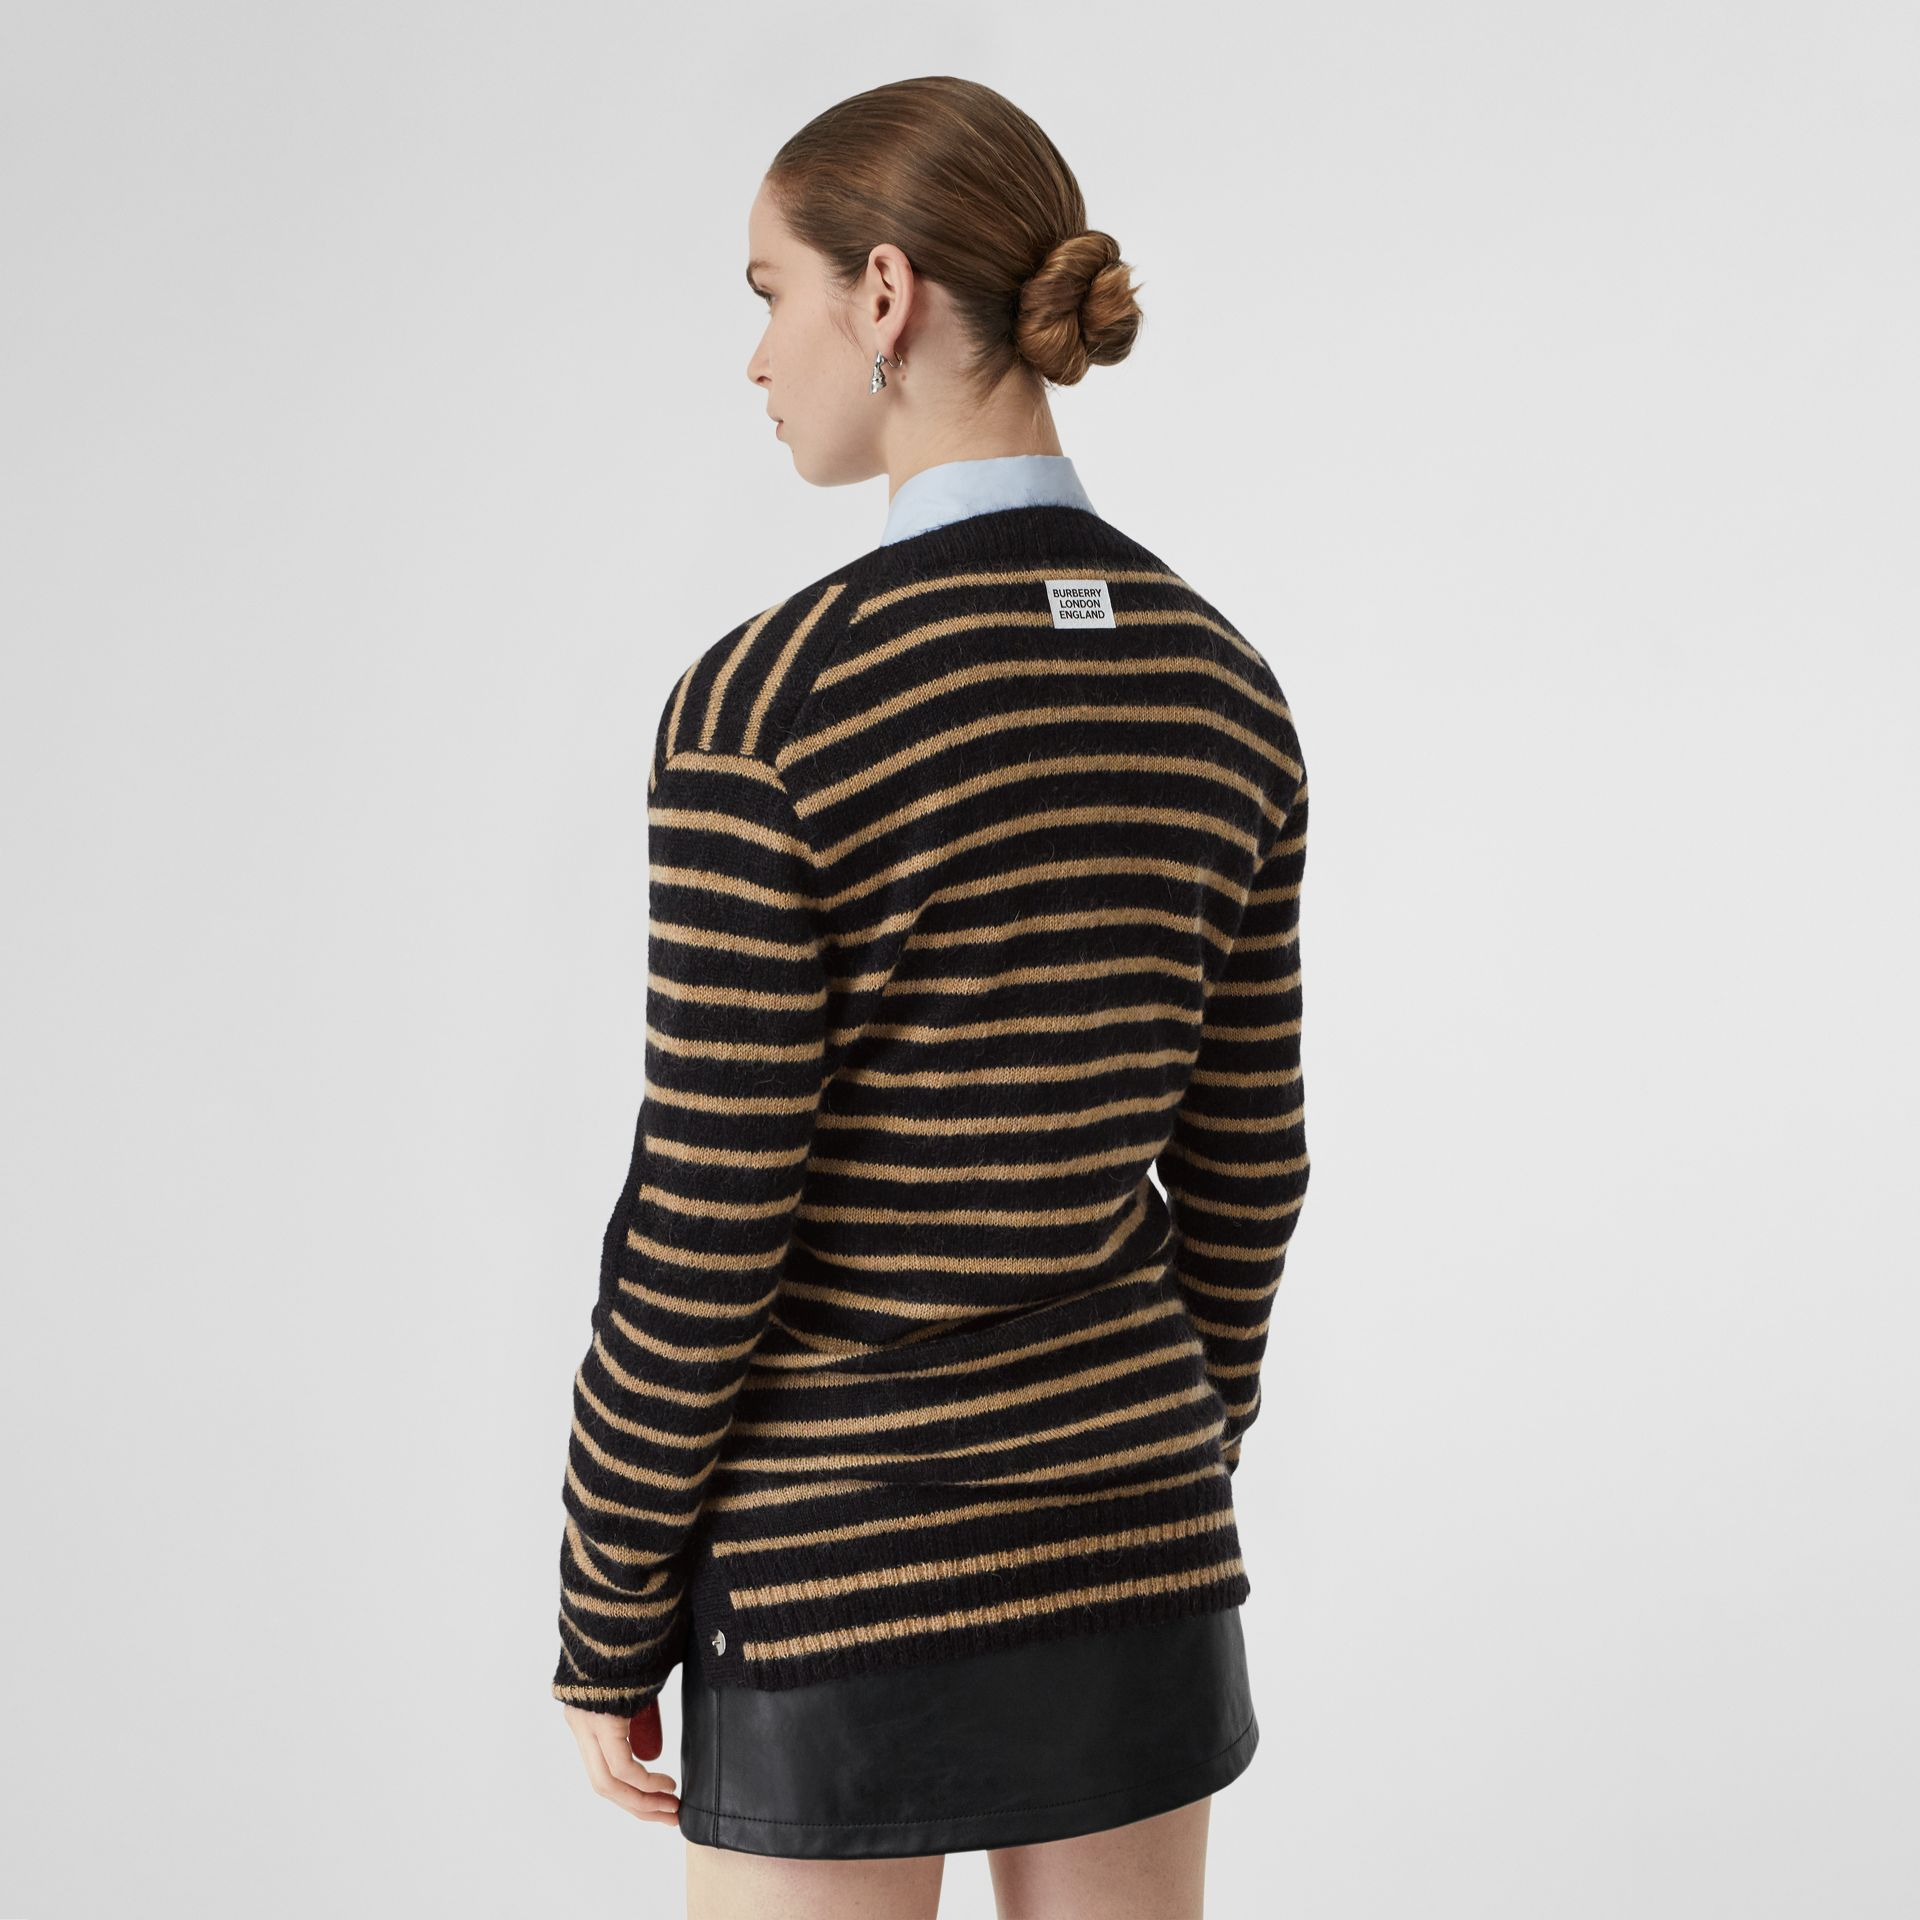 Montage Print Striped Mohair Wool Blend Sweater in Black/honey - Women | Burberry Canada - gallery image 2